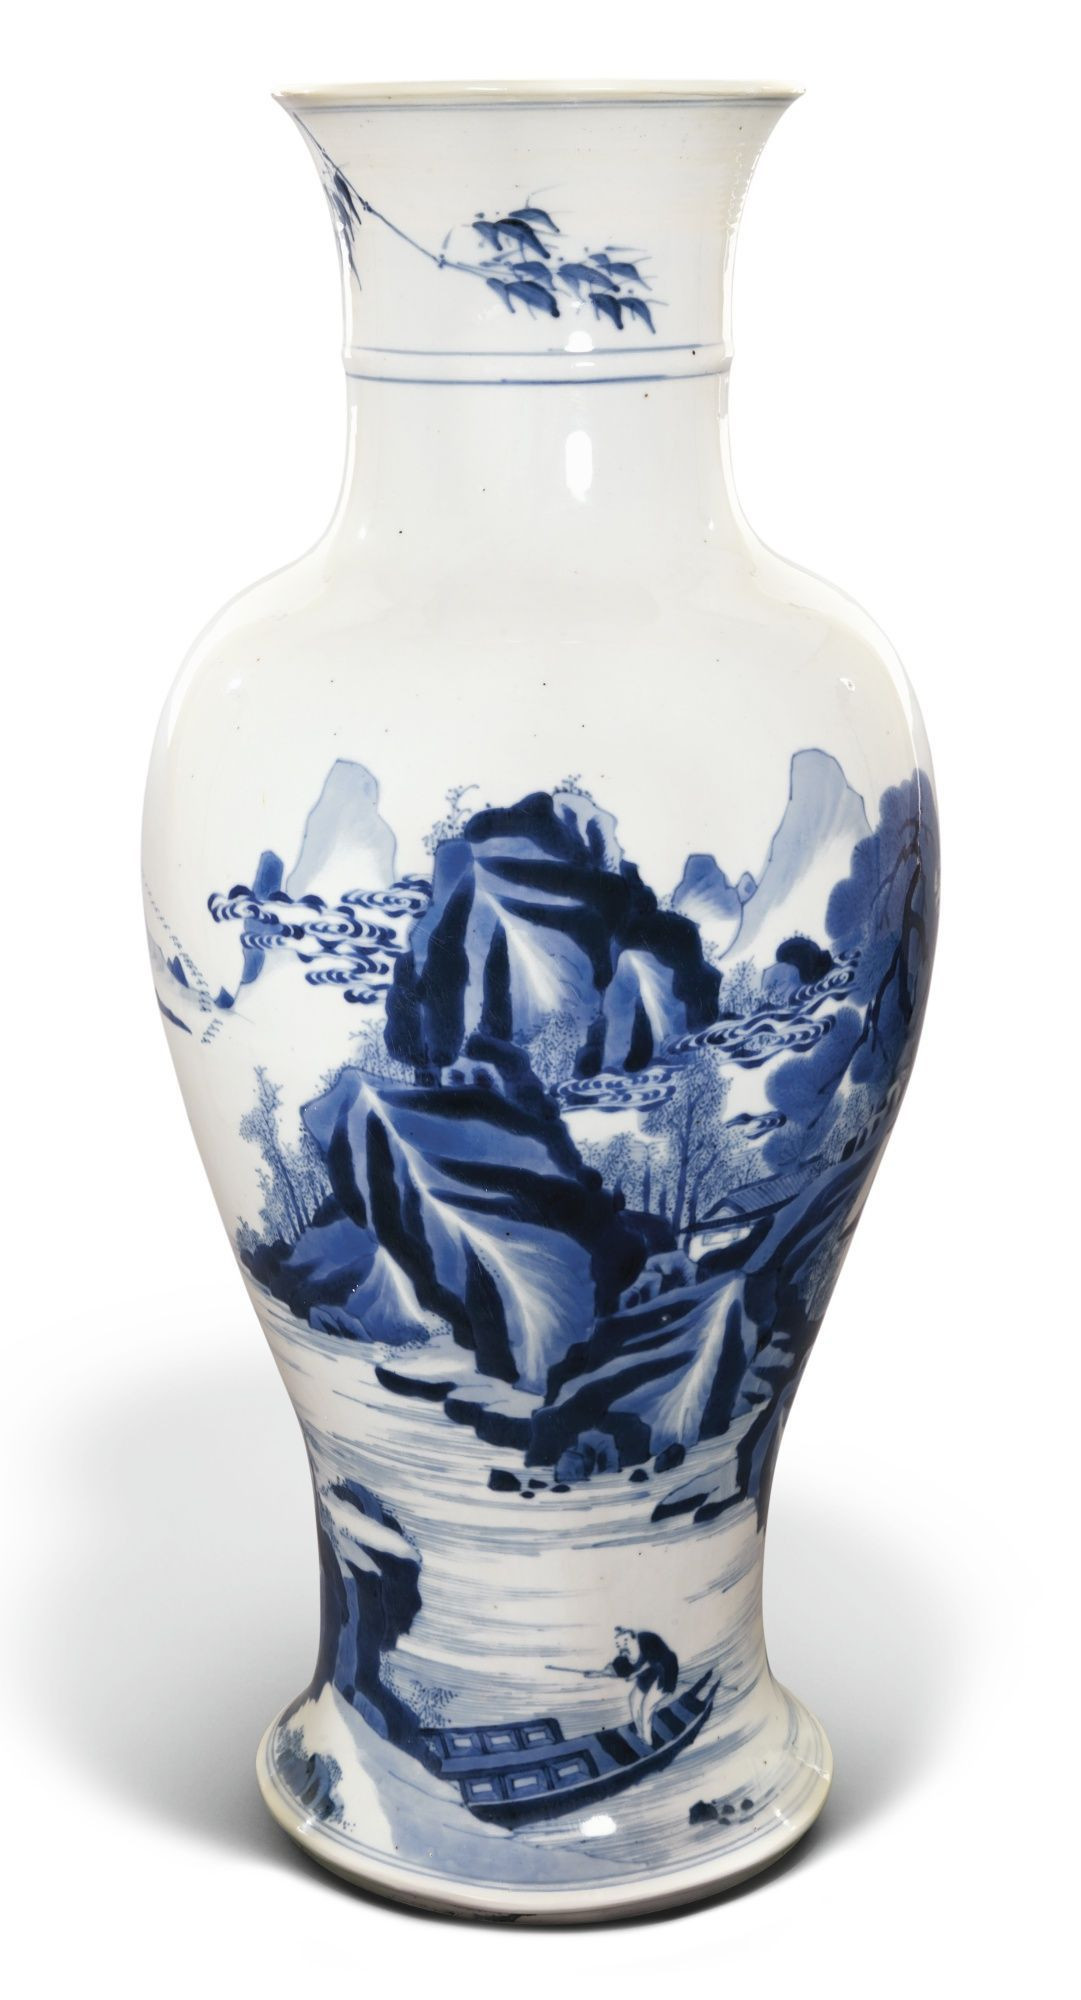 wide mouth vase of 32 wide mouth vase the weekly world with a large blue and white baluster vase qing dynasty kangxi period